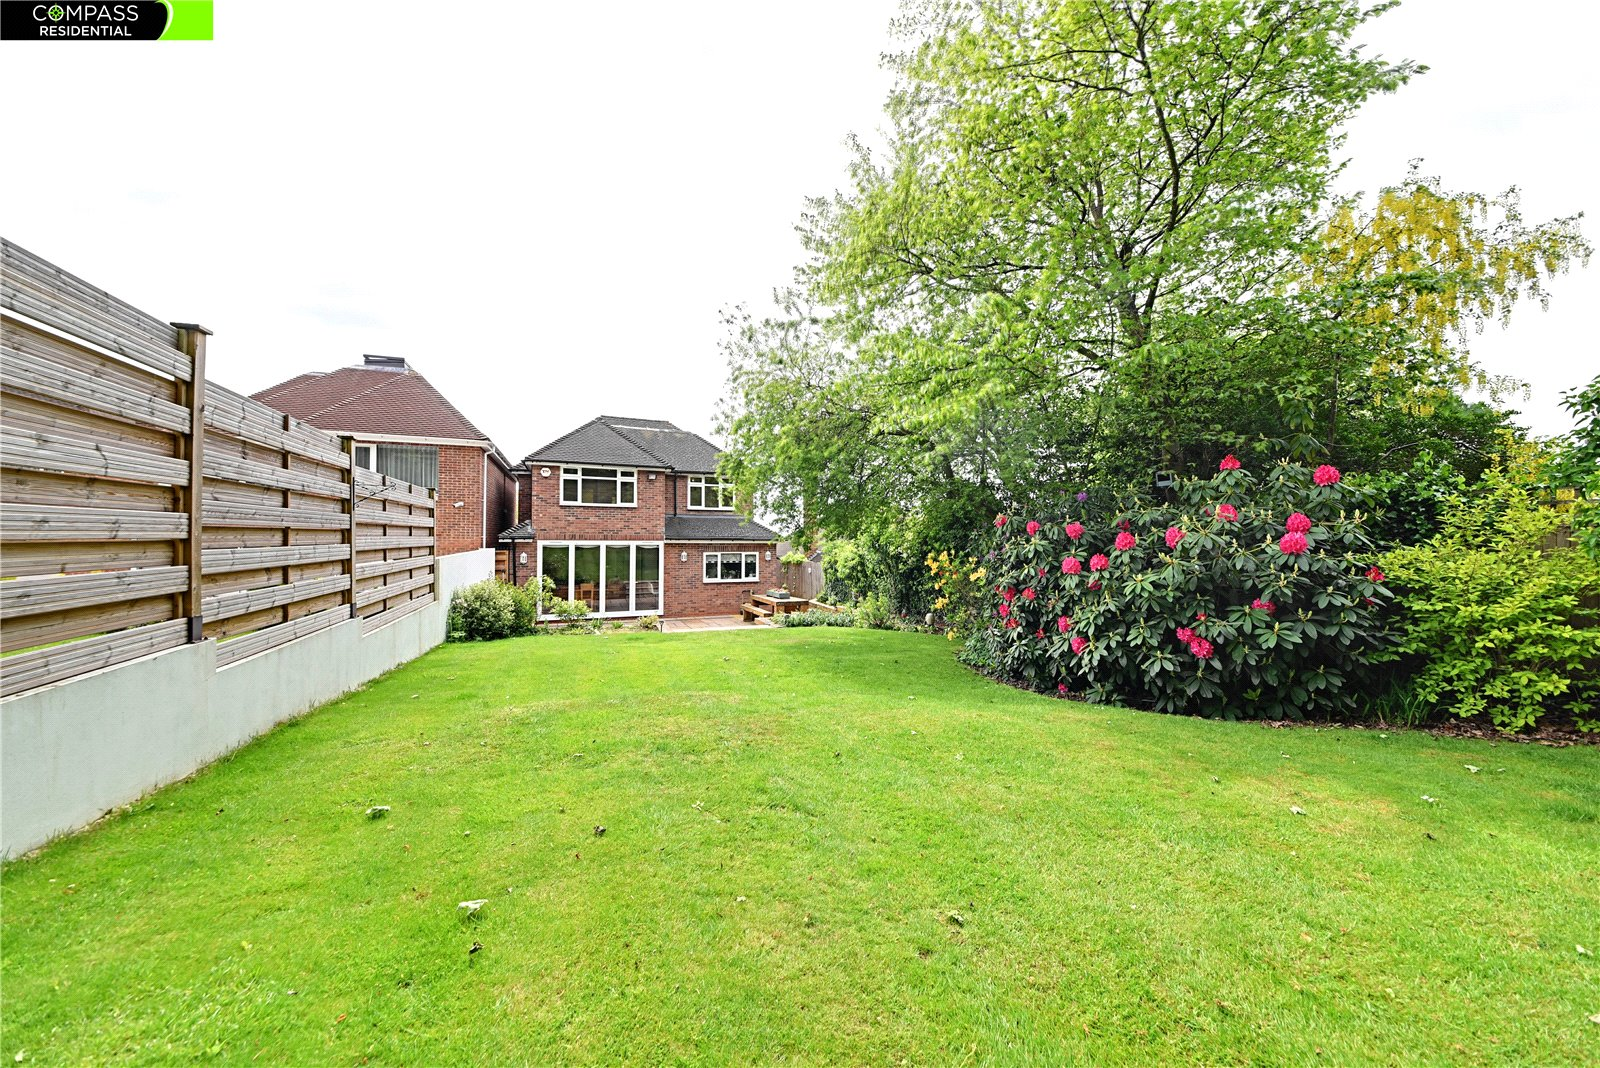 4 bed house for sale in Stanmore, HA7 3AZ  - Property Image 5